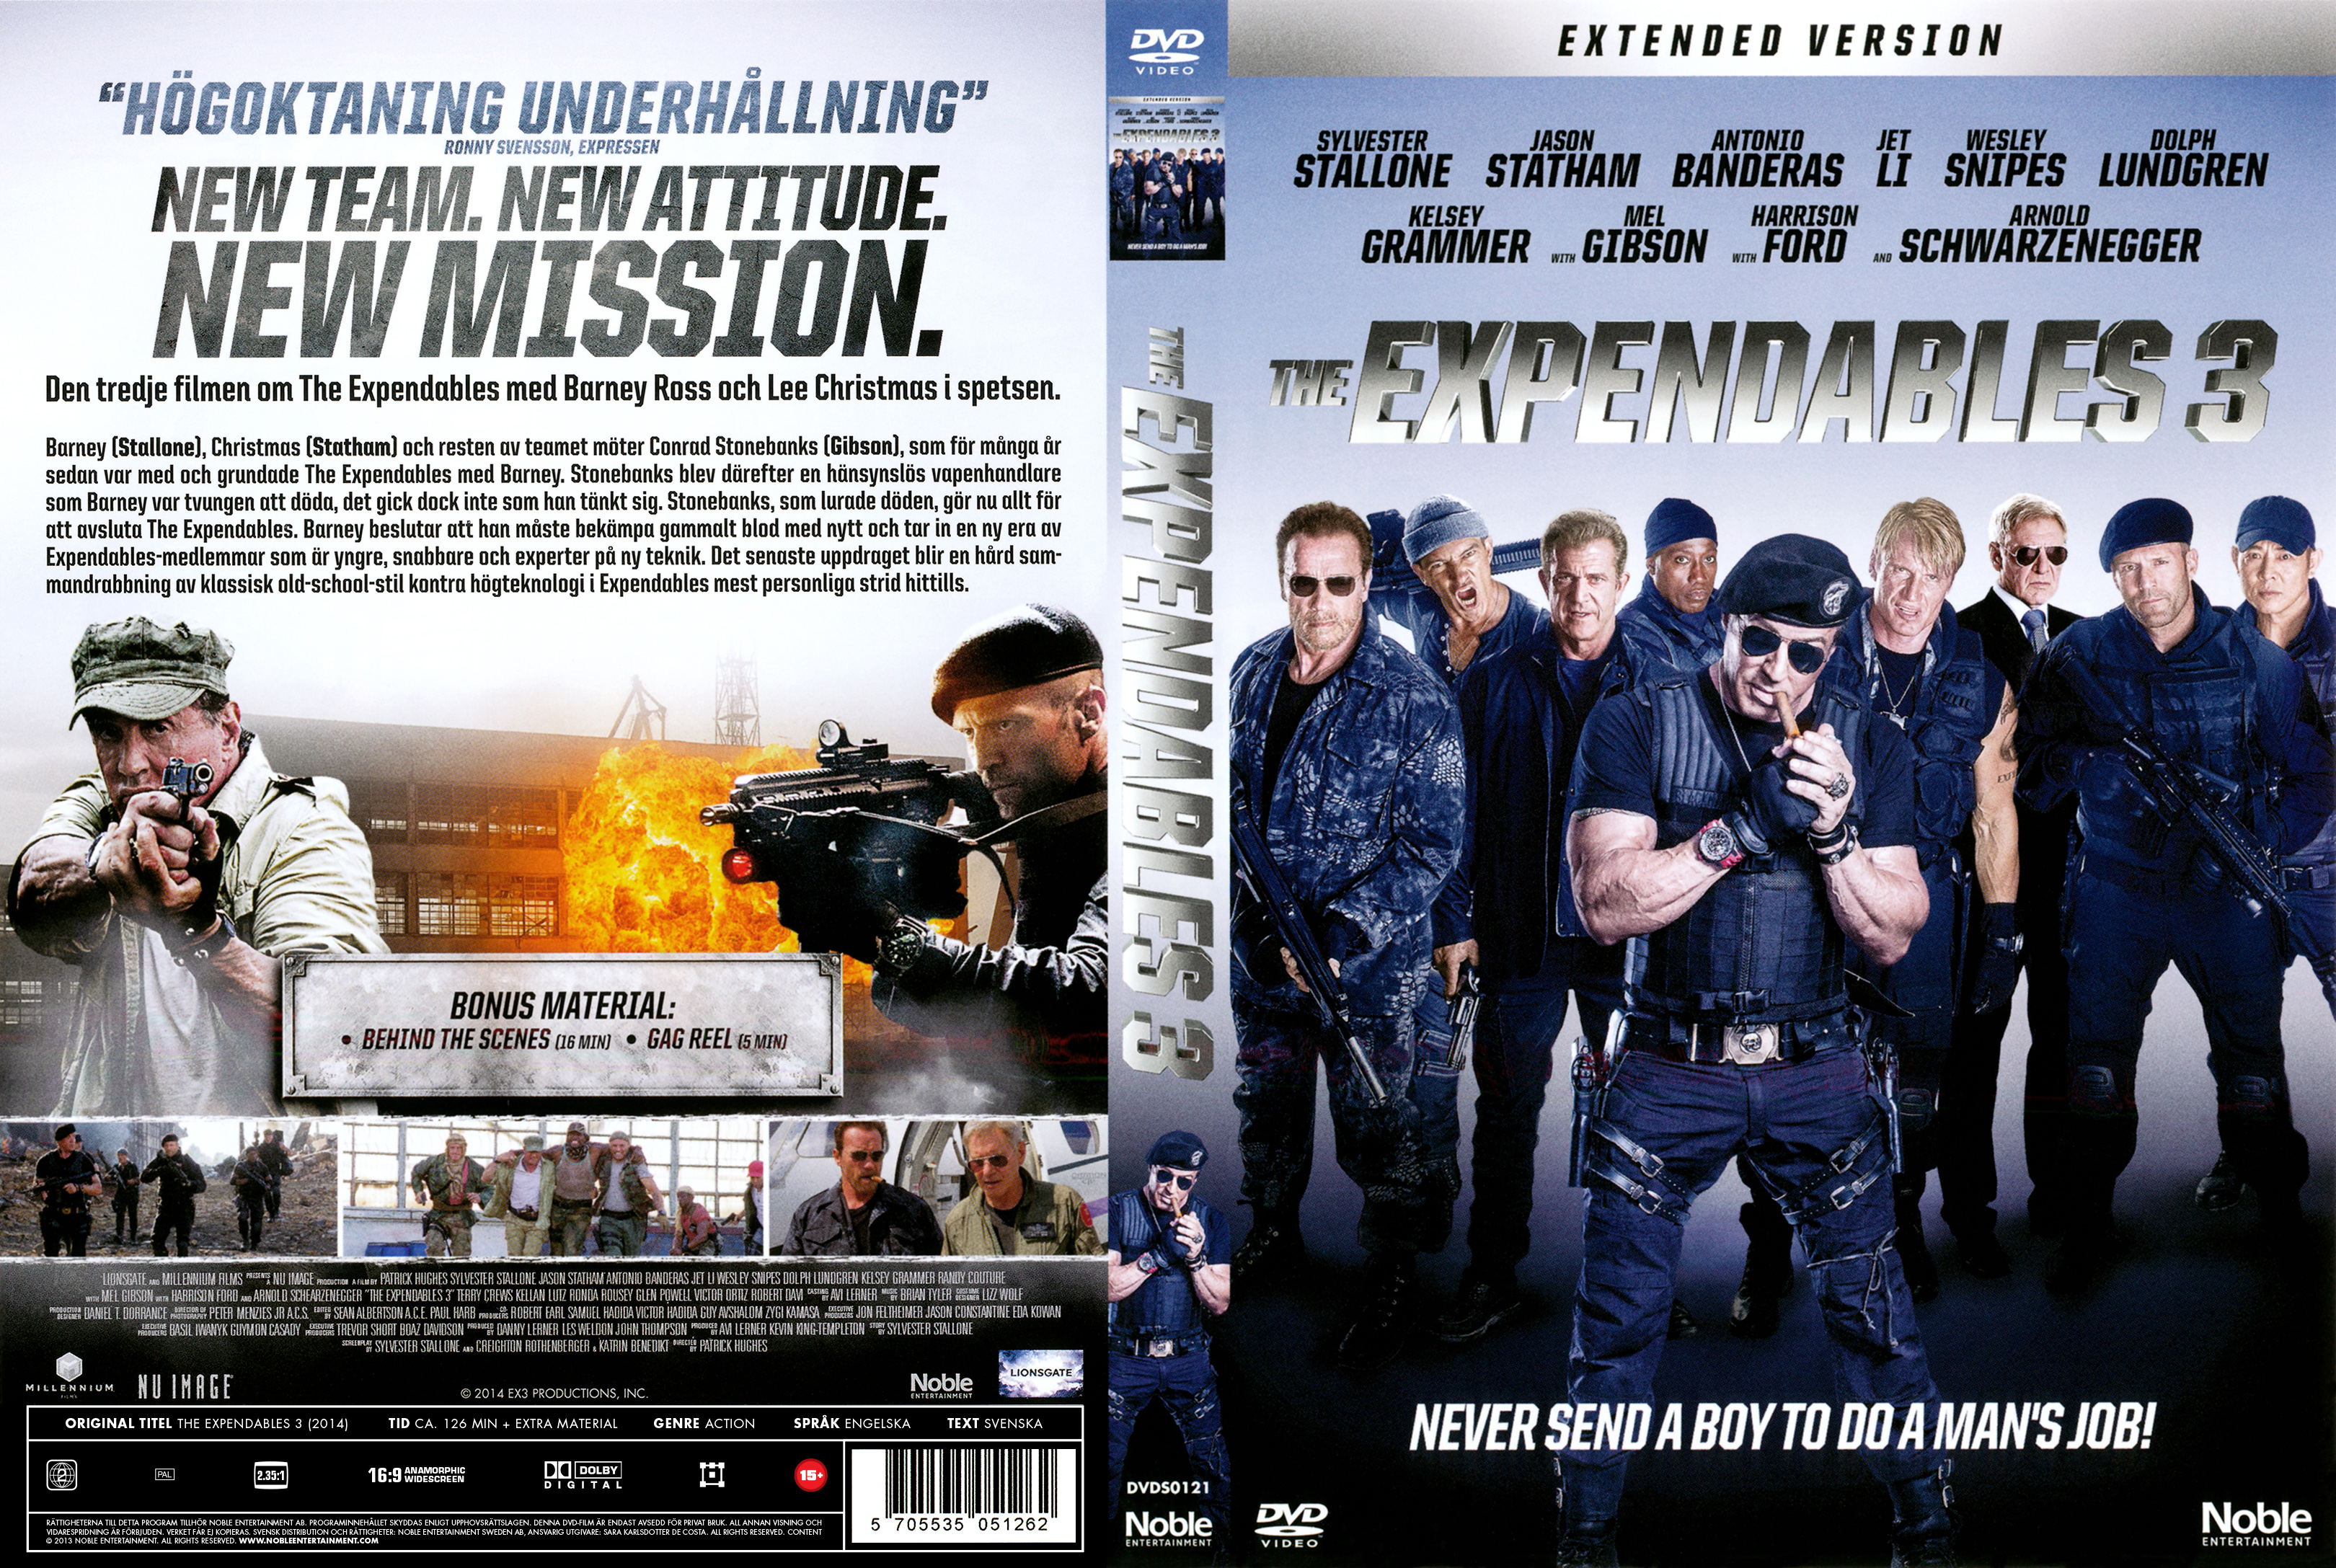 COVERS BOX SK ::: The Expendables 3 - Extended version